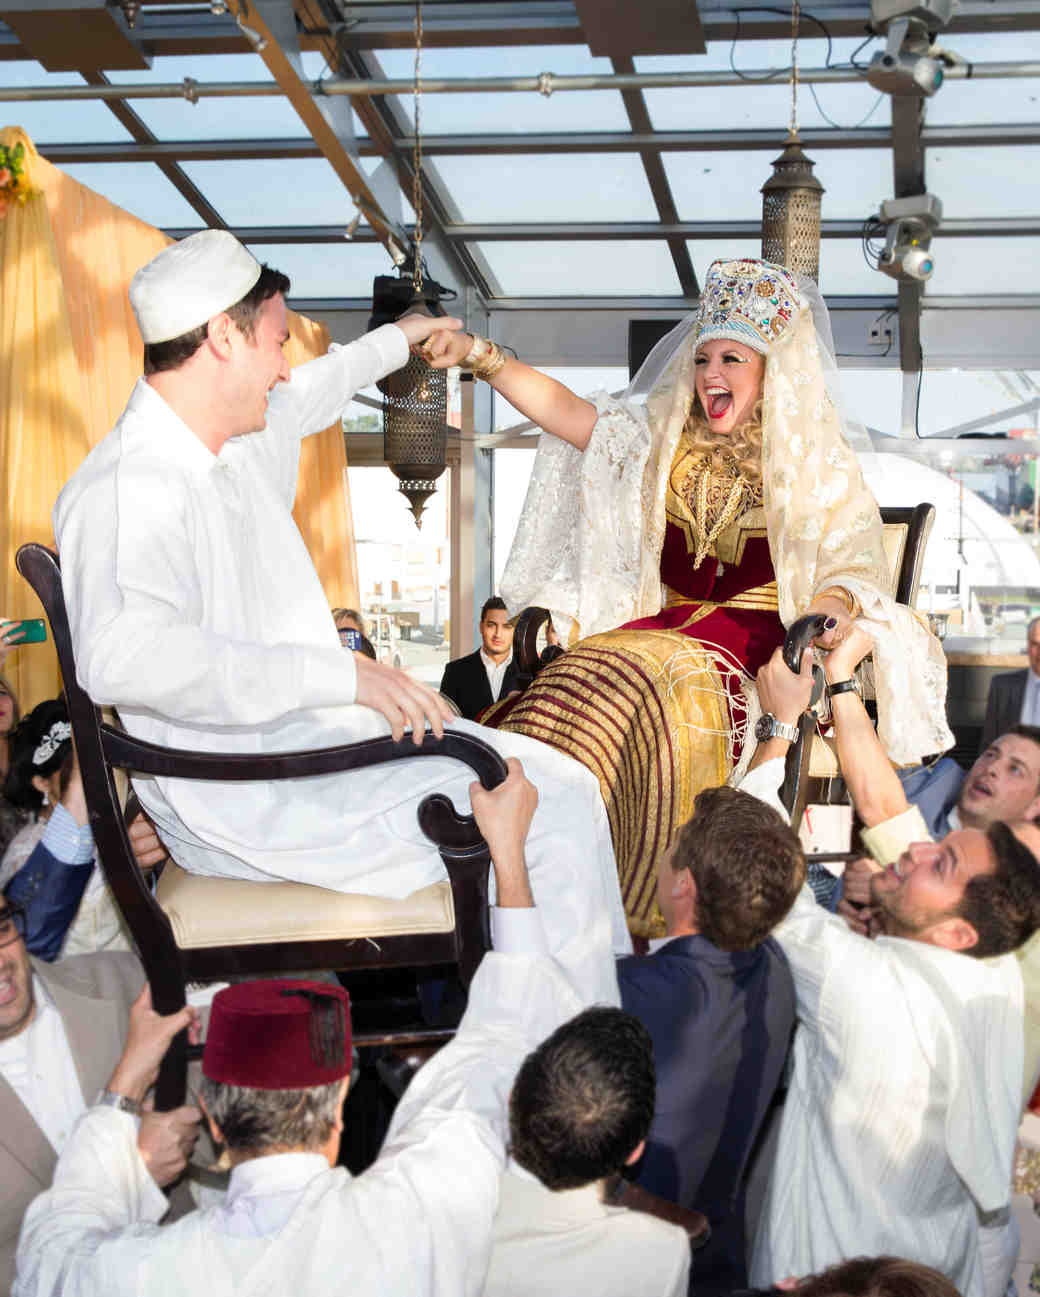 Wedding Superstitions: 17 Jewish Wedding Traditions For Your Big Day